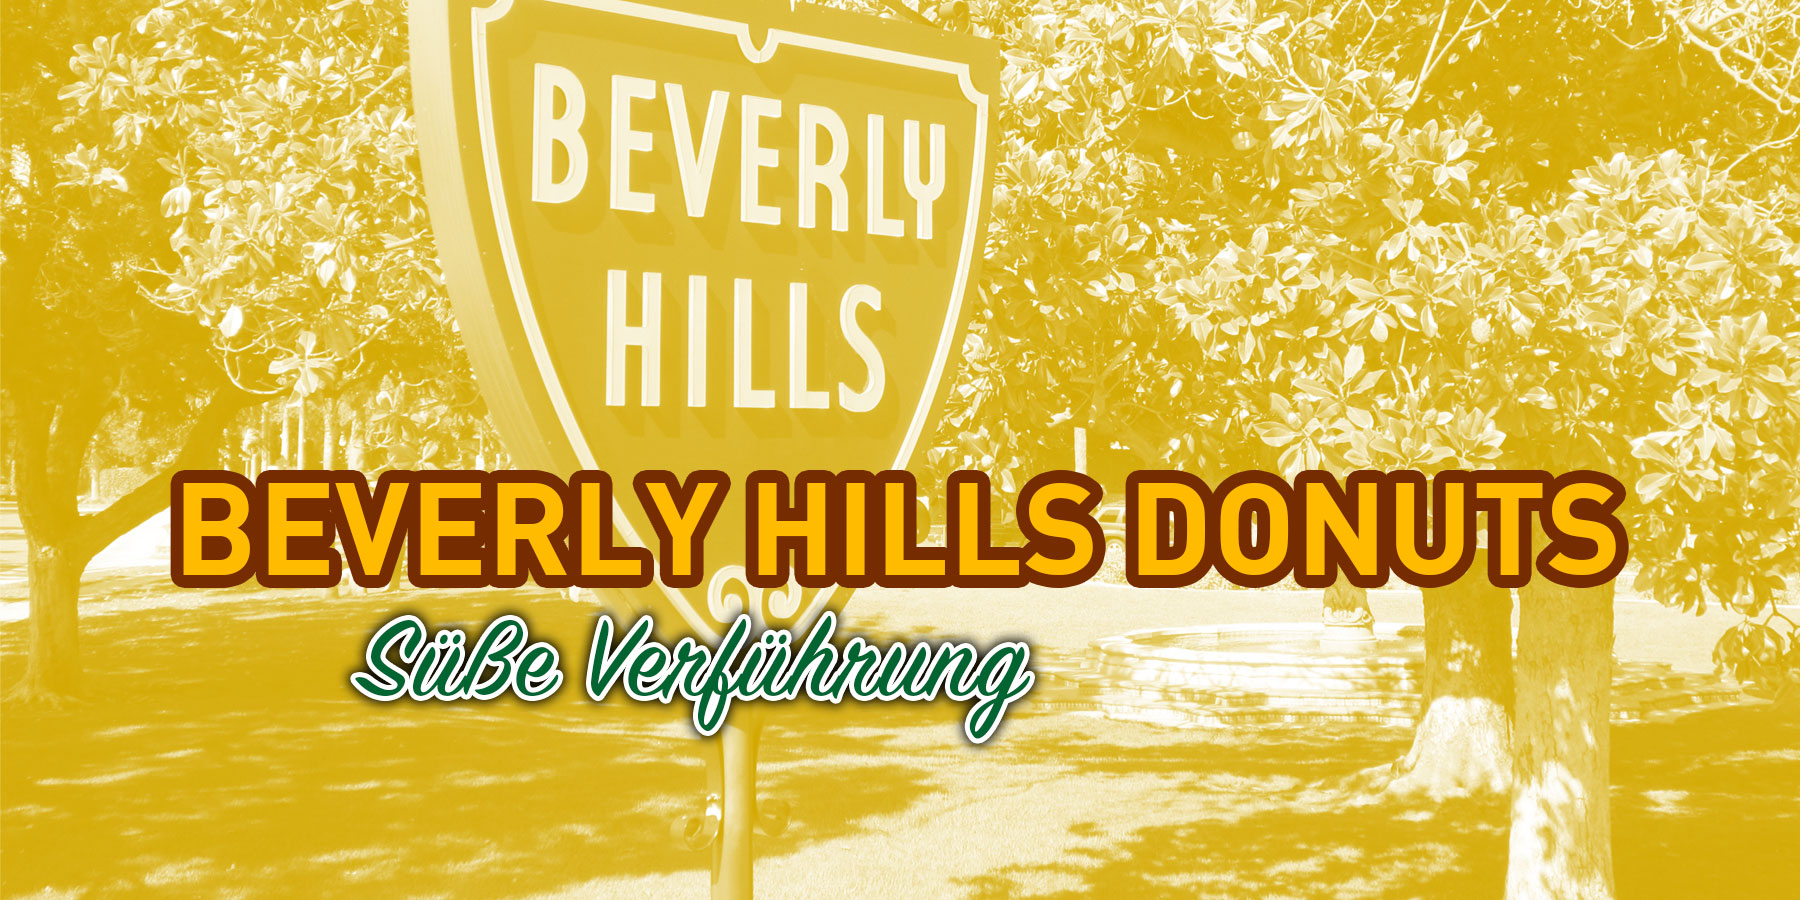 Beverly Hills Donuts